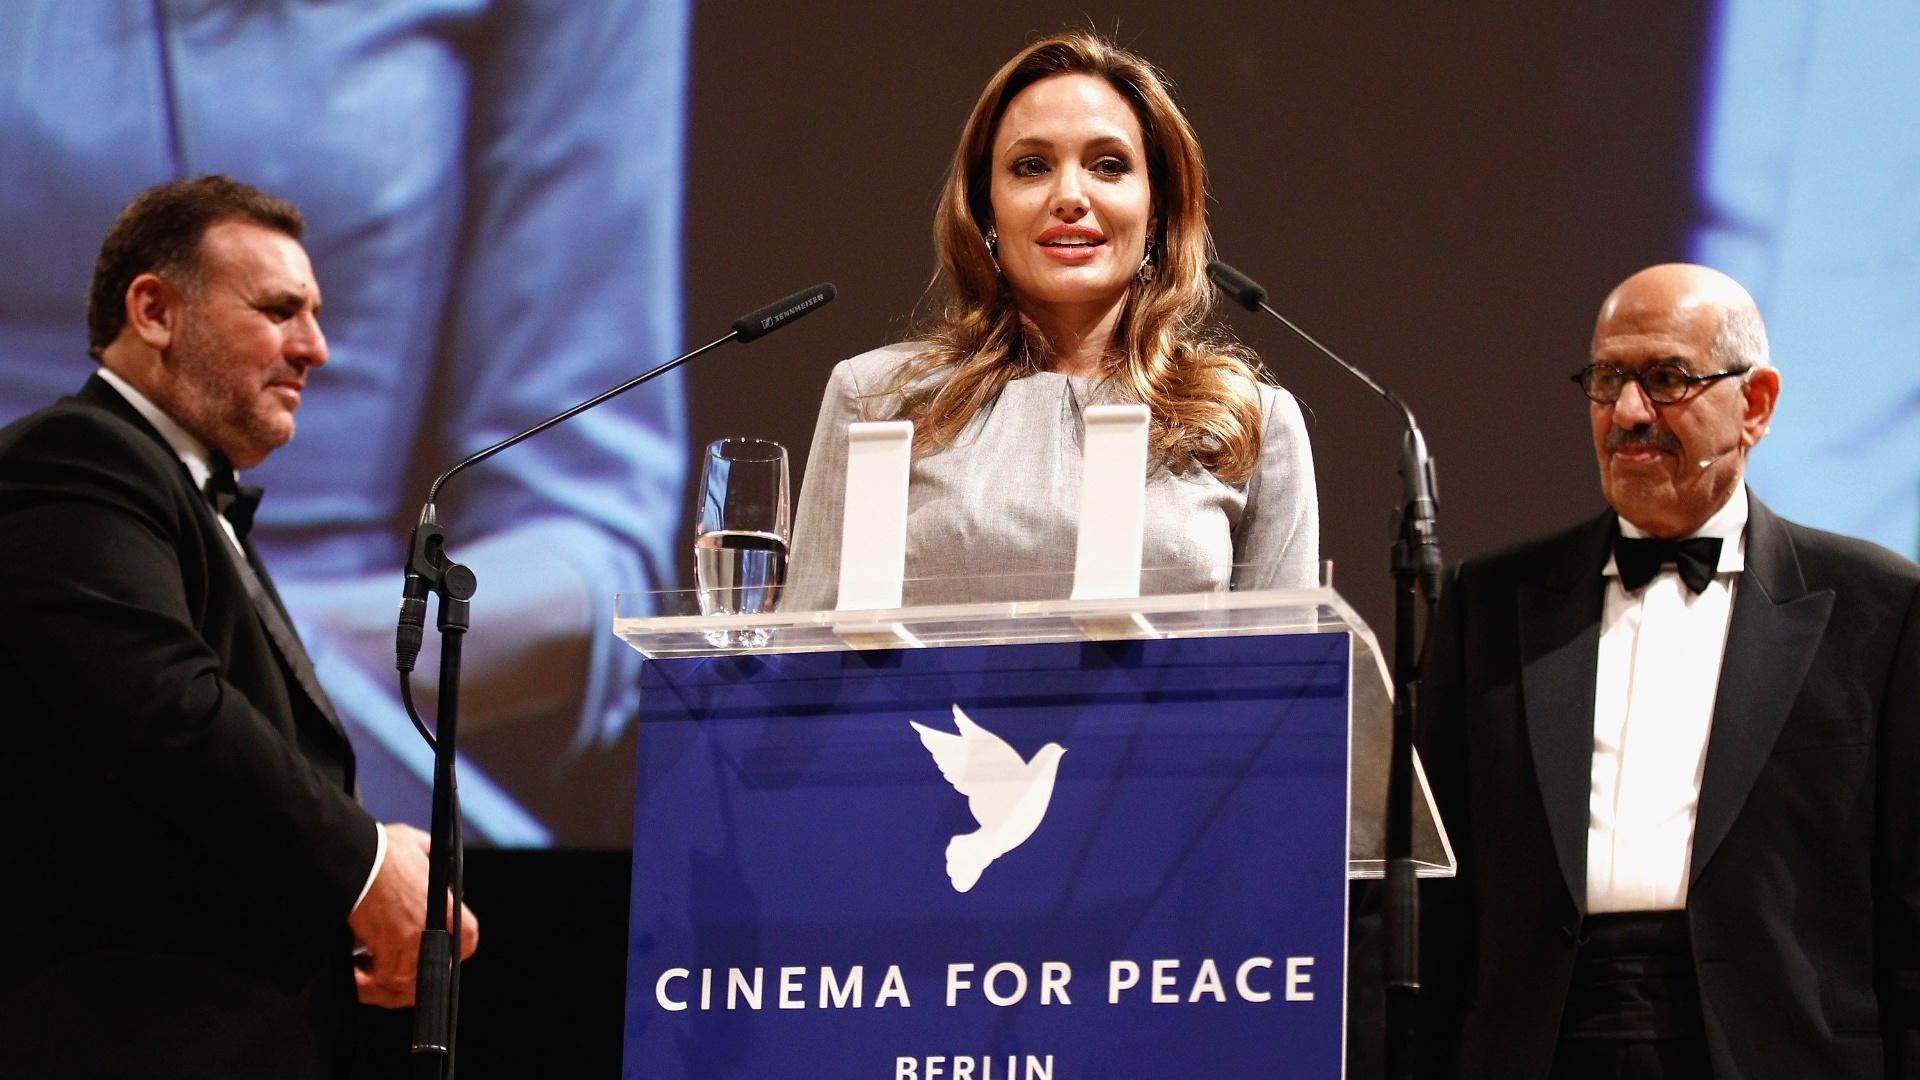 Angelina Jolie discursa no evento Cinema for Peace durante o Festival de Berlim 2012 (13/2/12)